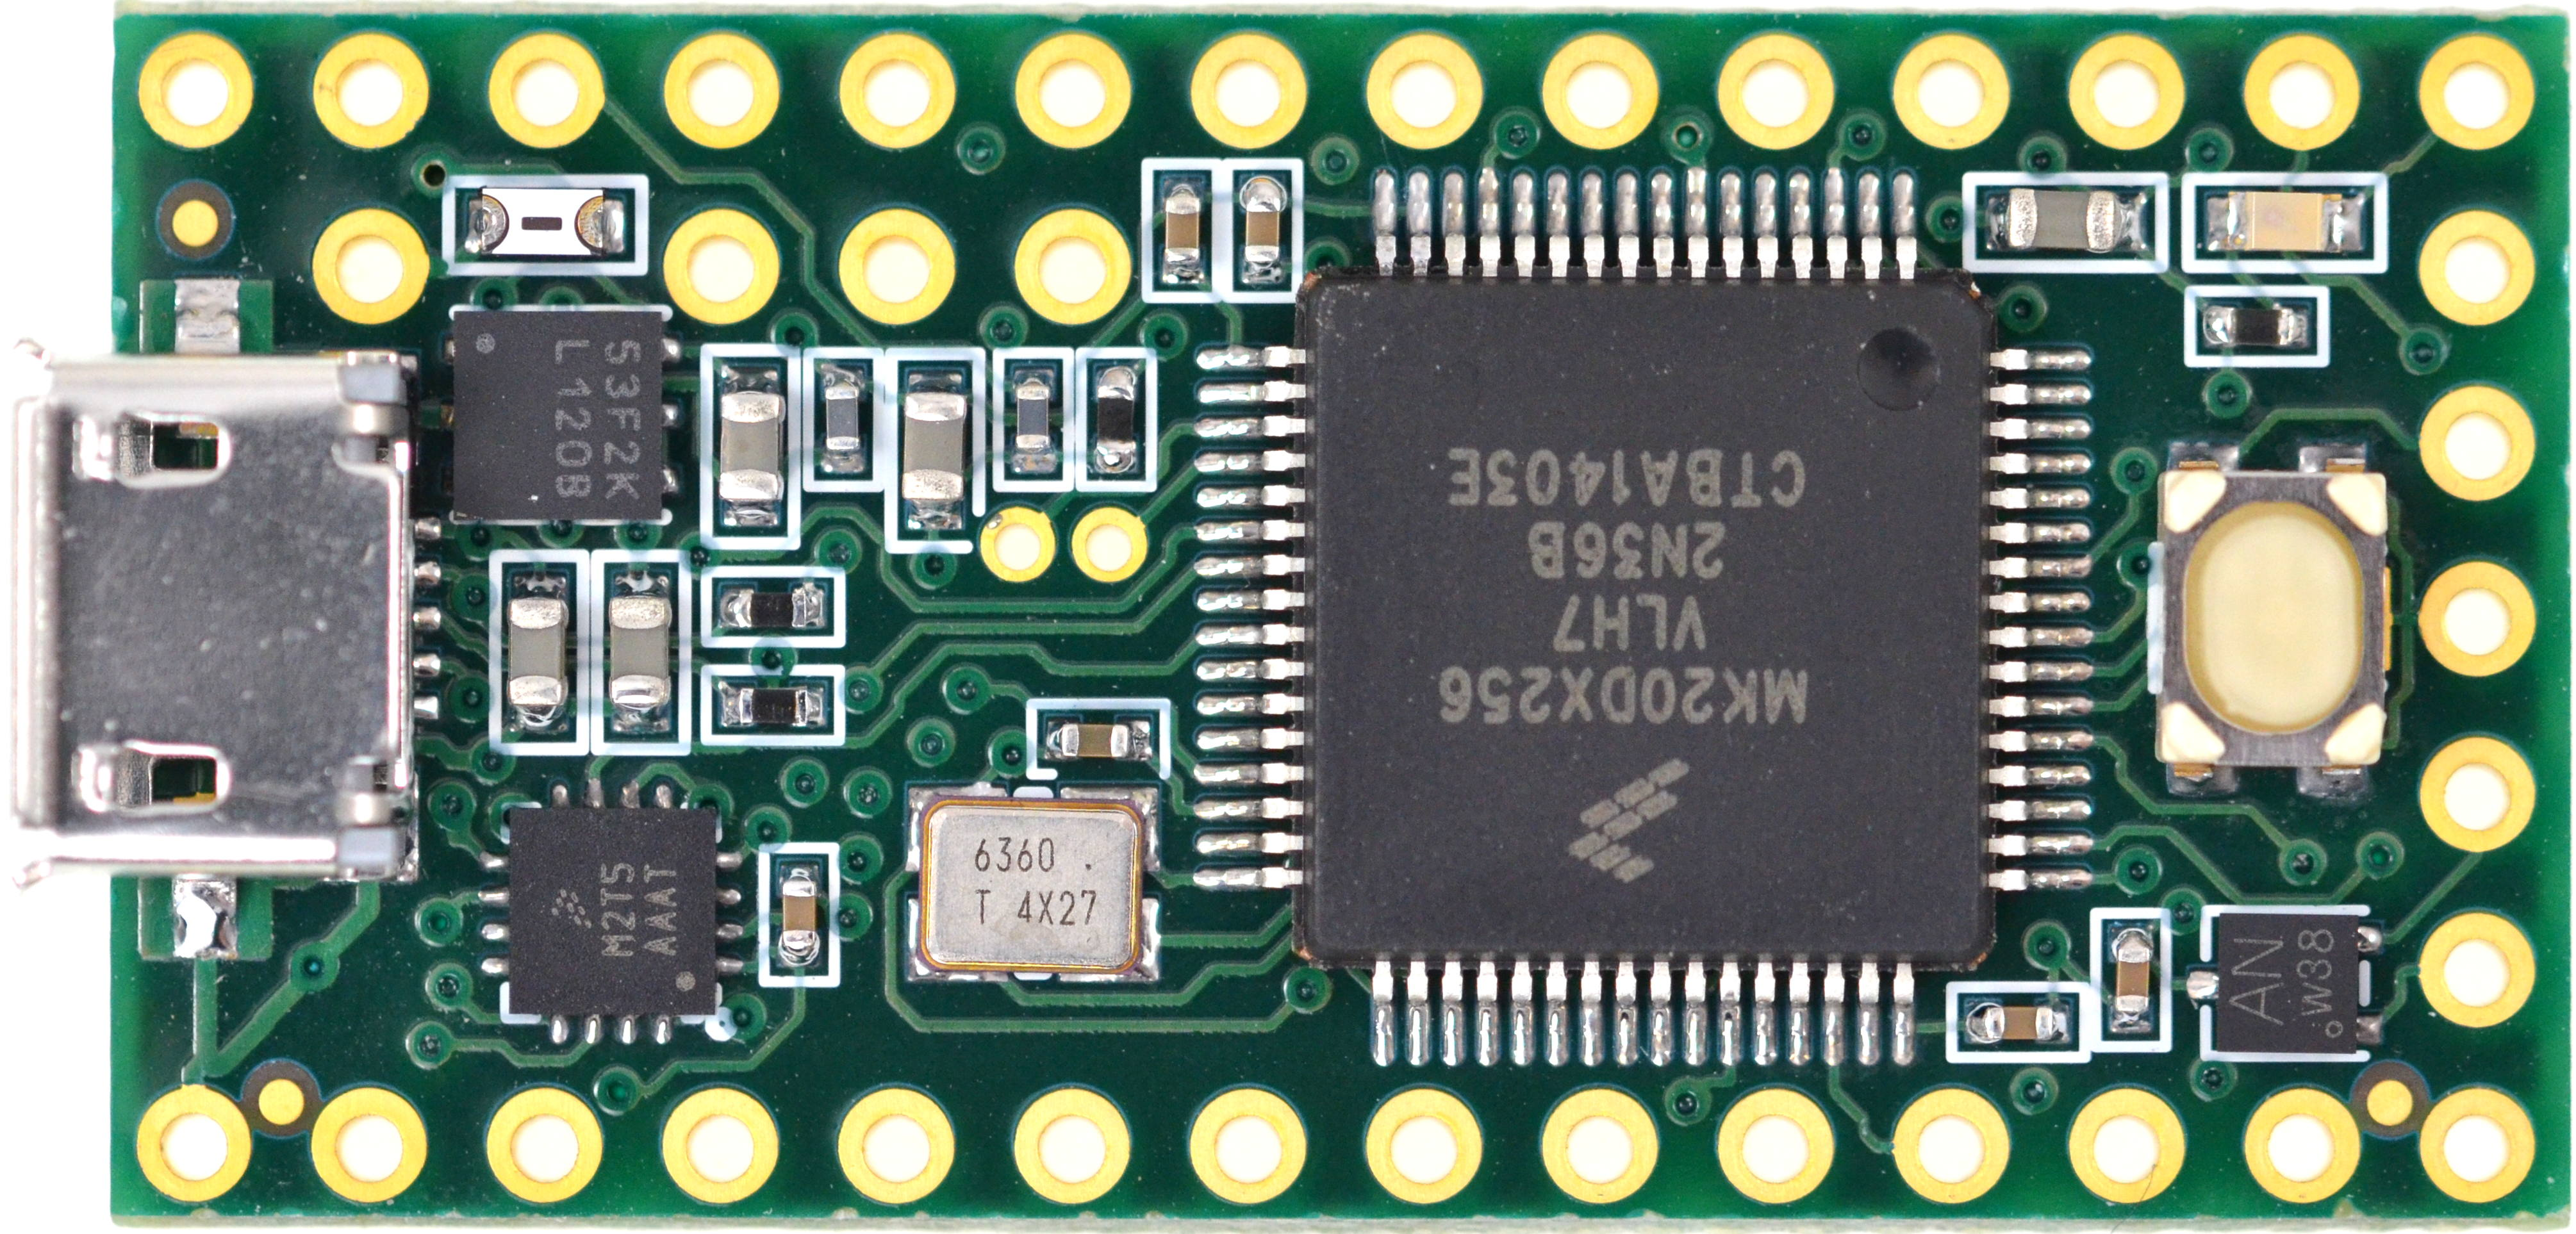 Teensy Beefs Up Tiny Dev Board with New Version | Make: